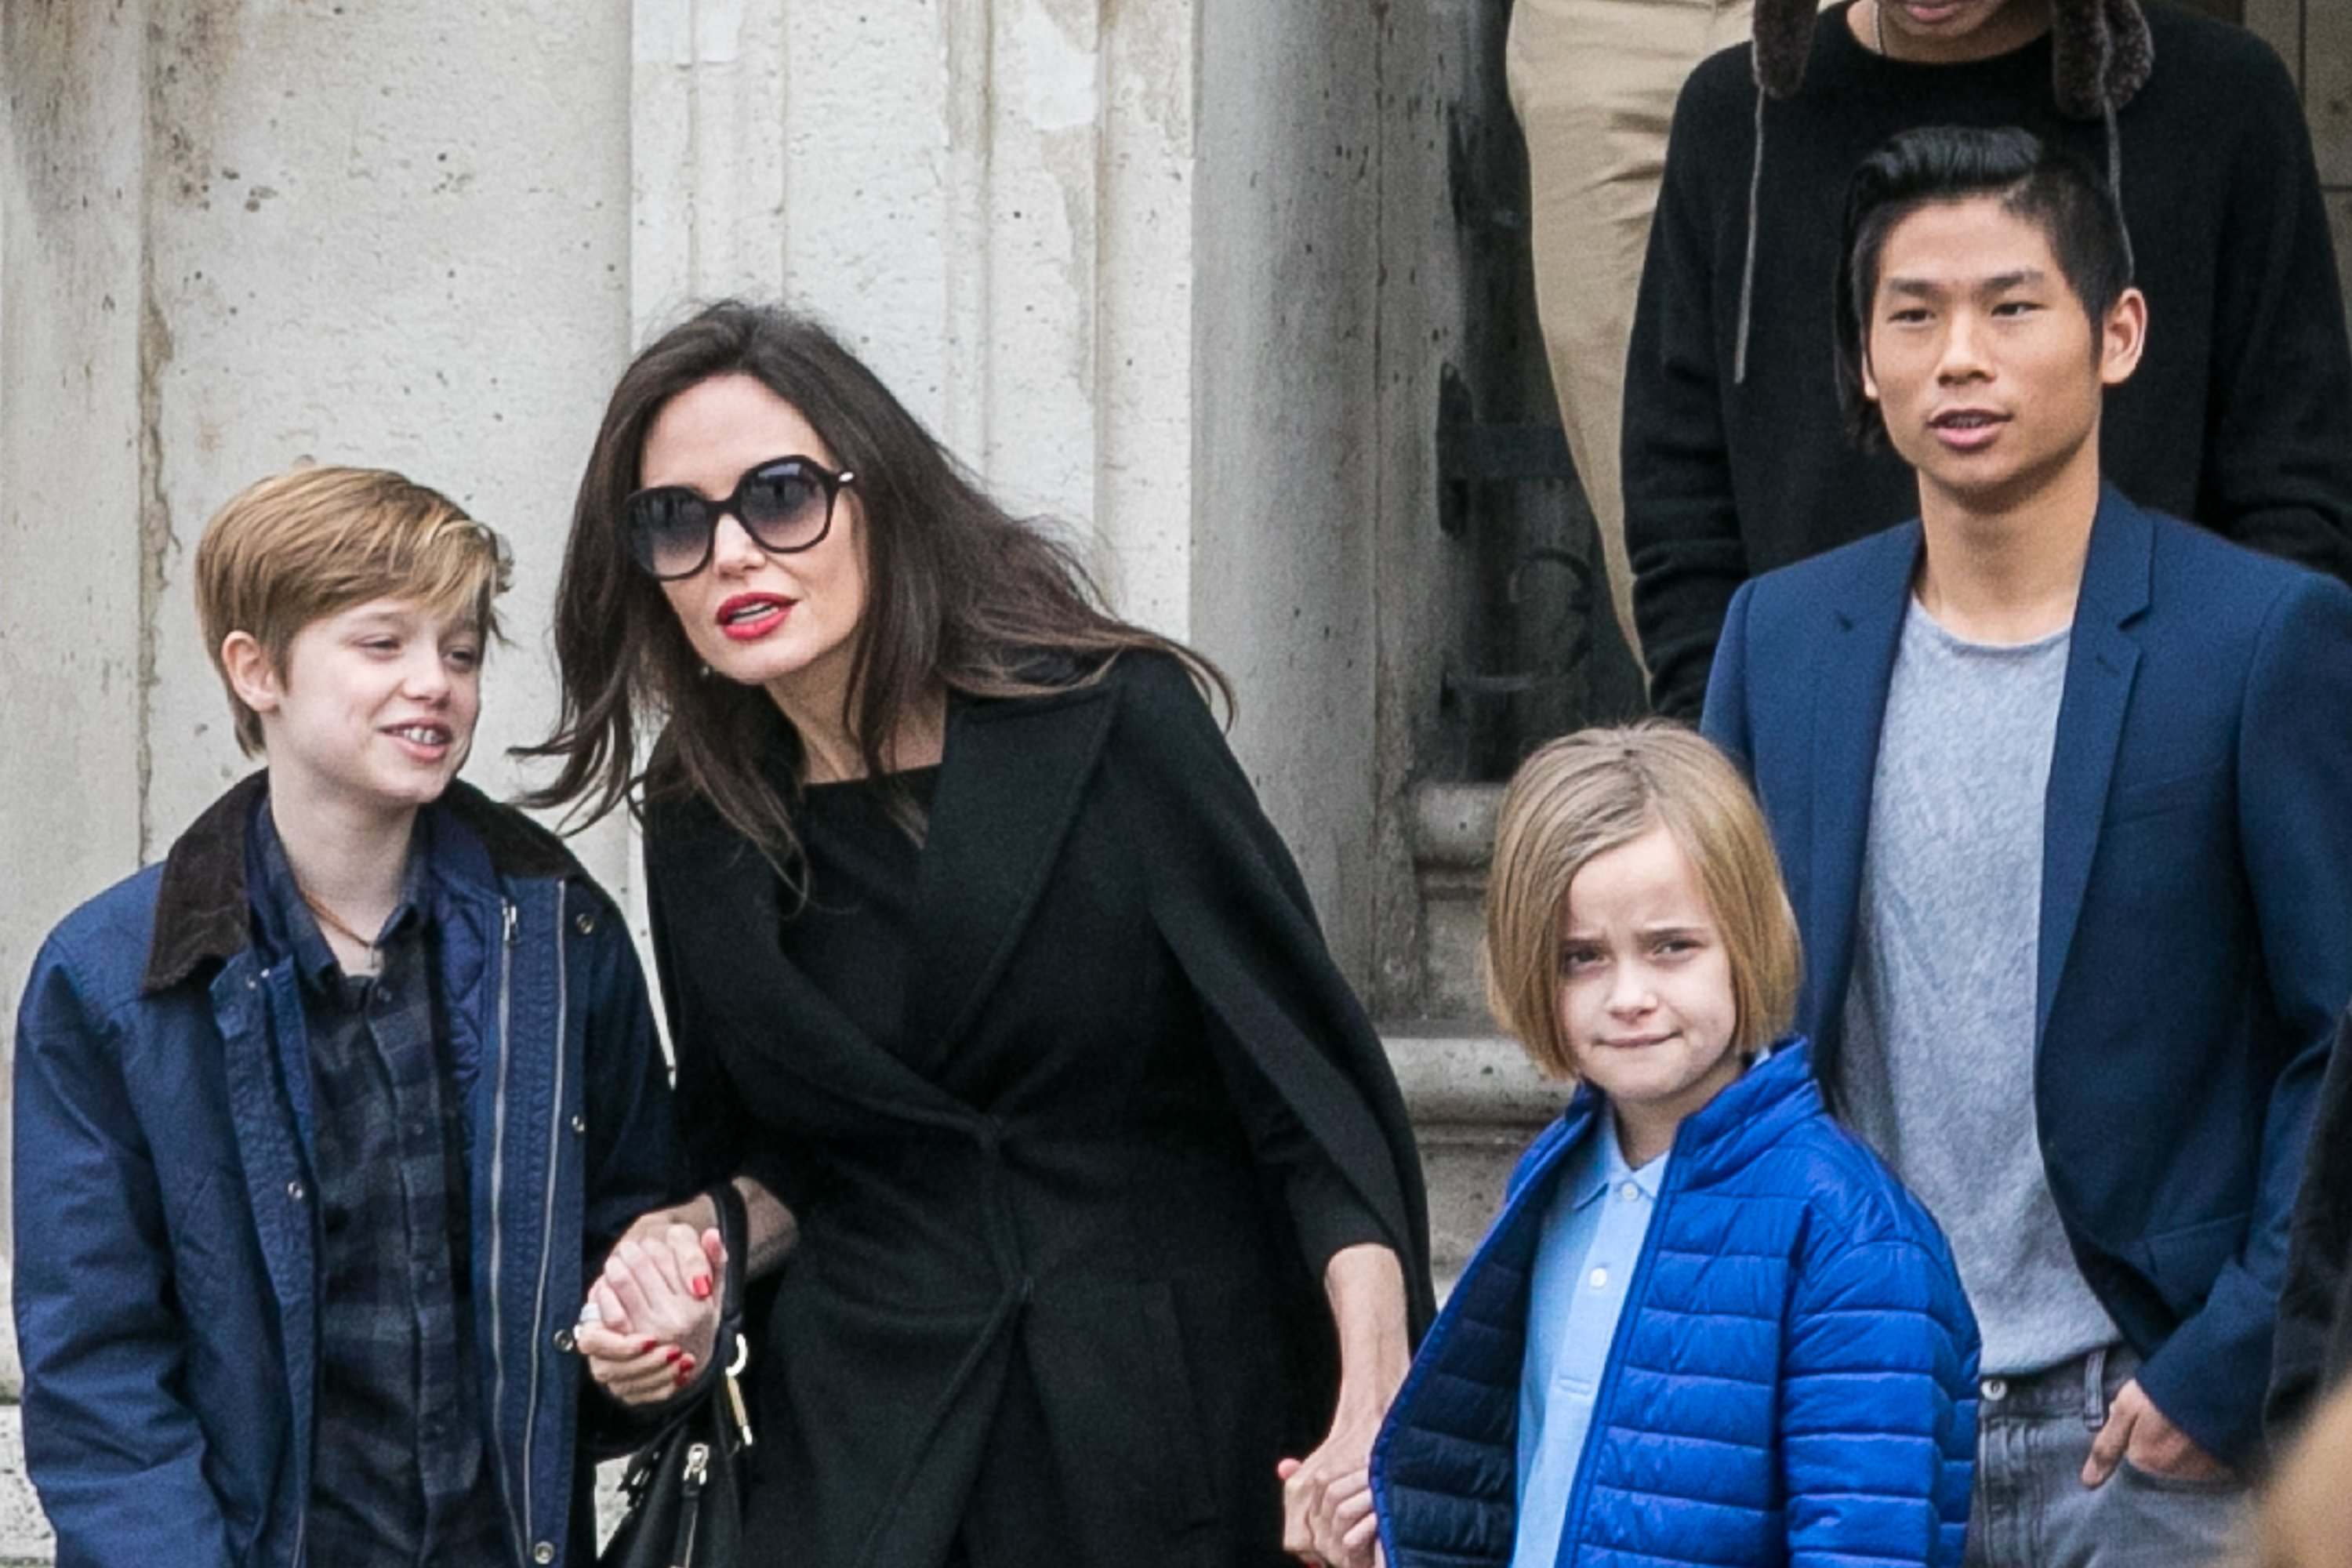 Image Credit: Getty Images/GC Images/Marc Piasecki | Jolie and her kids leaving the Louvre